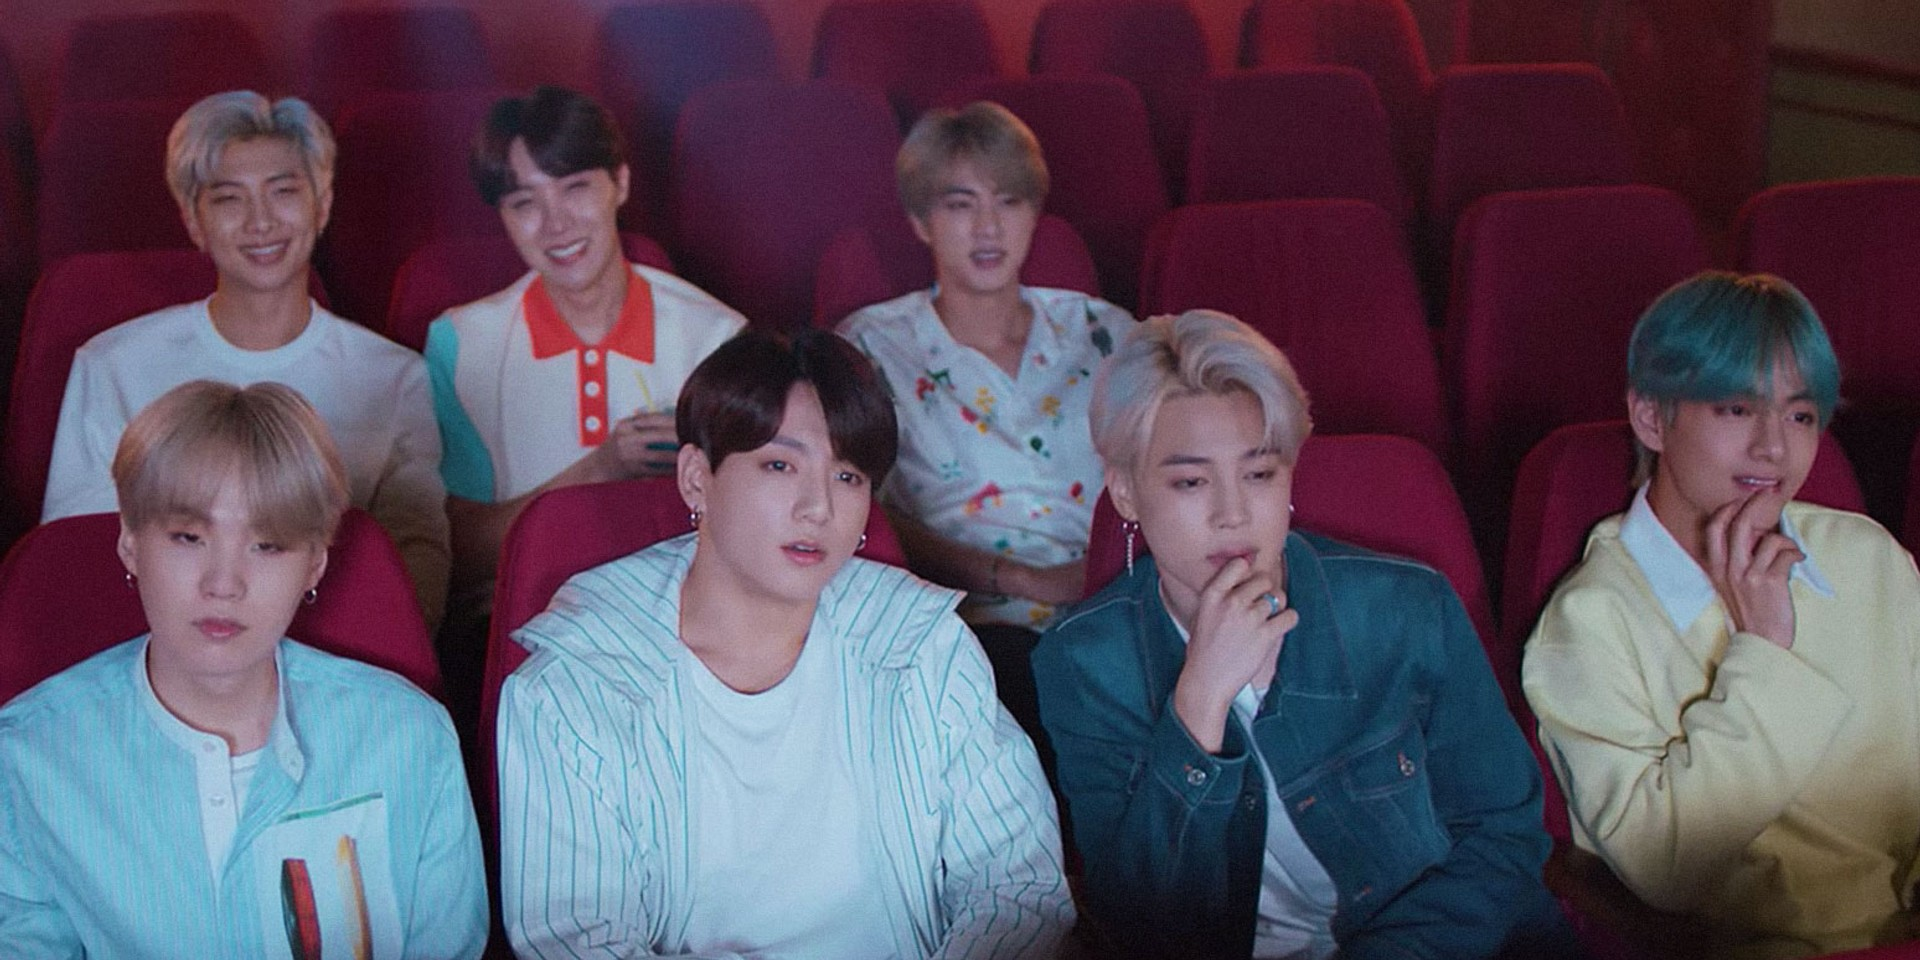 BTS releases Japanese song and music video, 'Lights' – watch